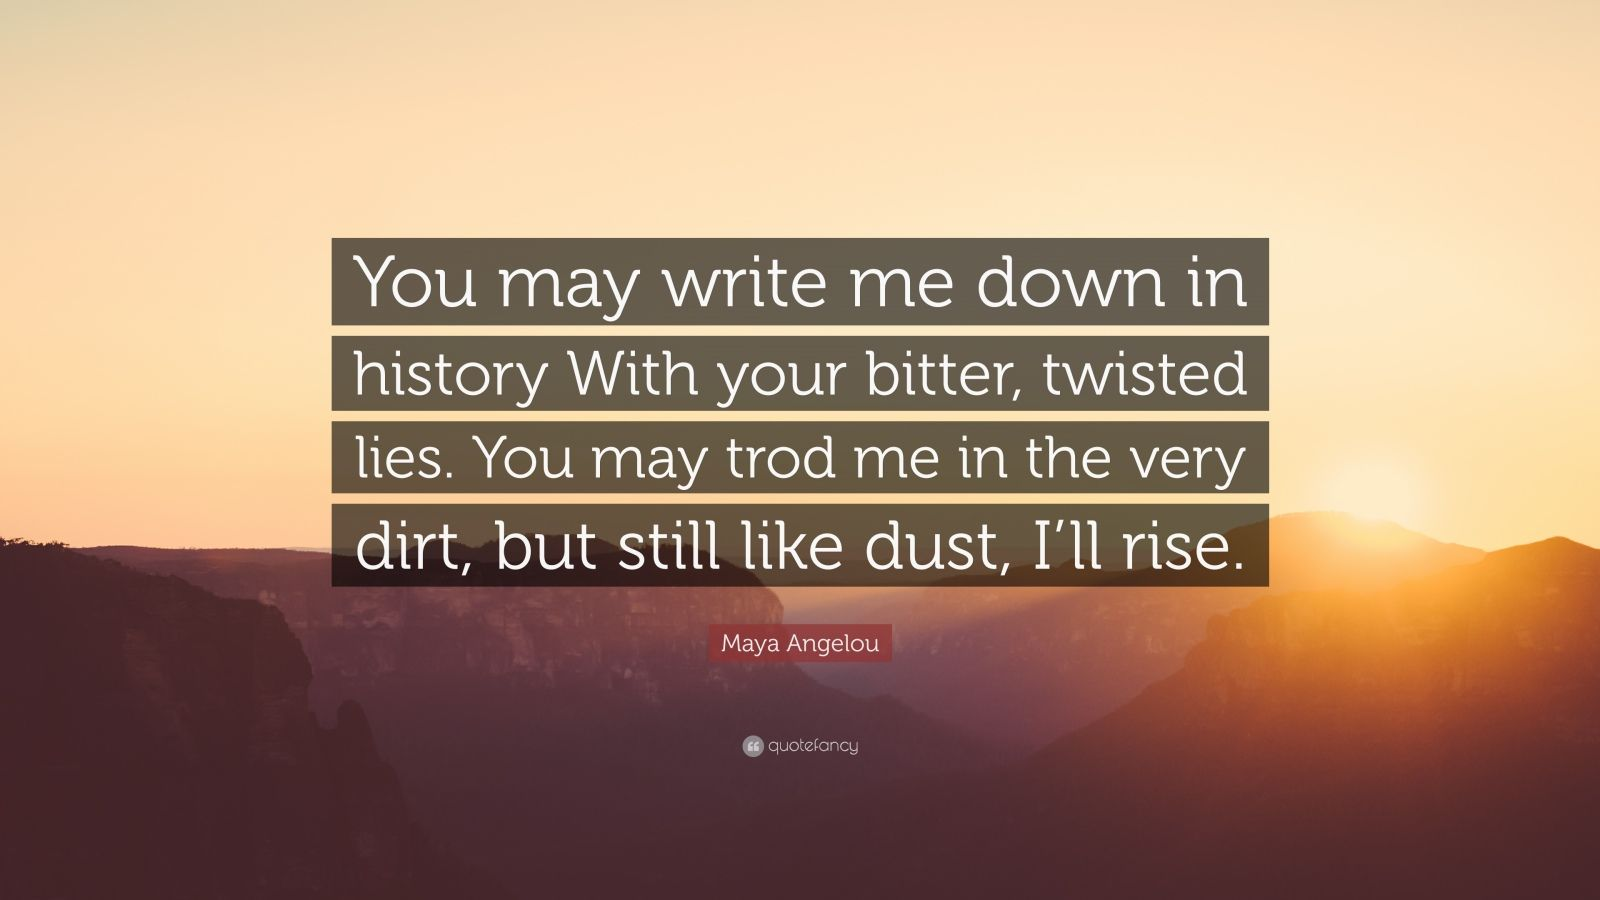 """Maya Angelou Quote: """"You may write me down in history With your bitter, twisted lies. You may trod me in the very dirt, but still like dust, I'll rise."""""""